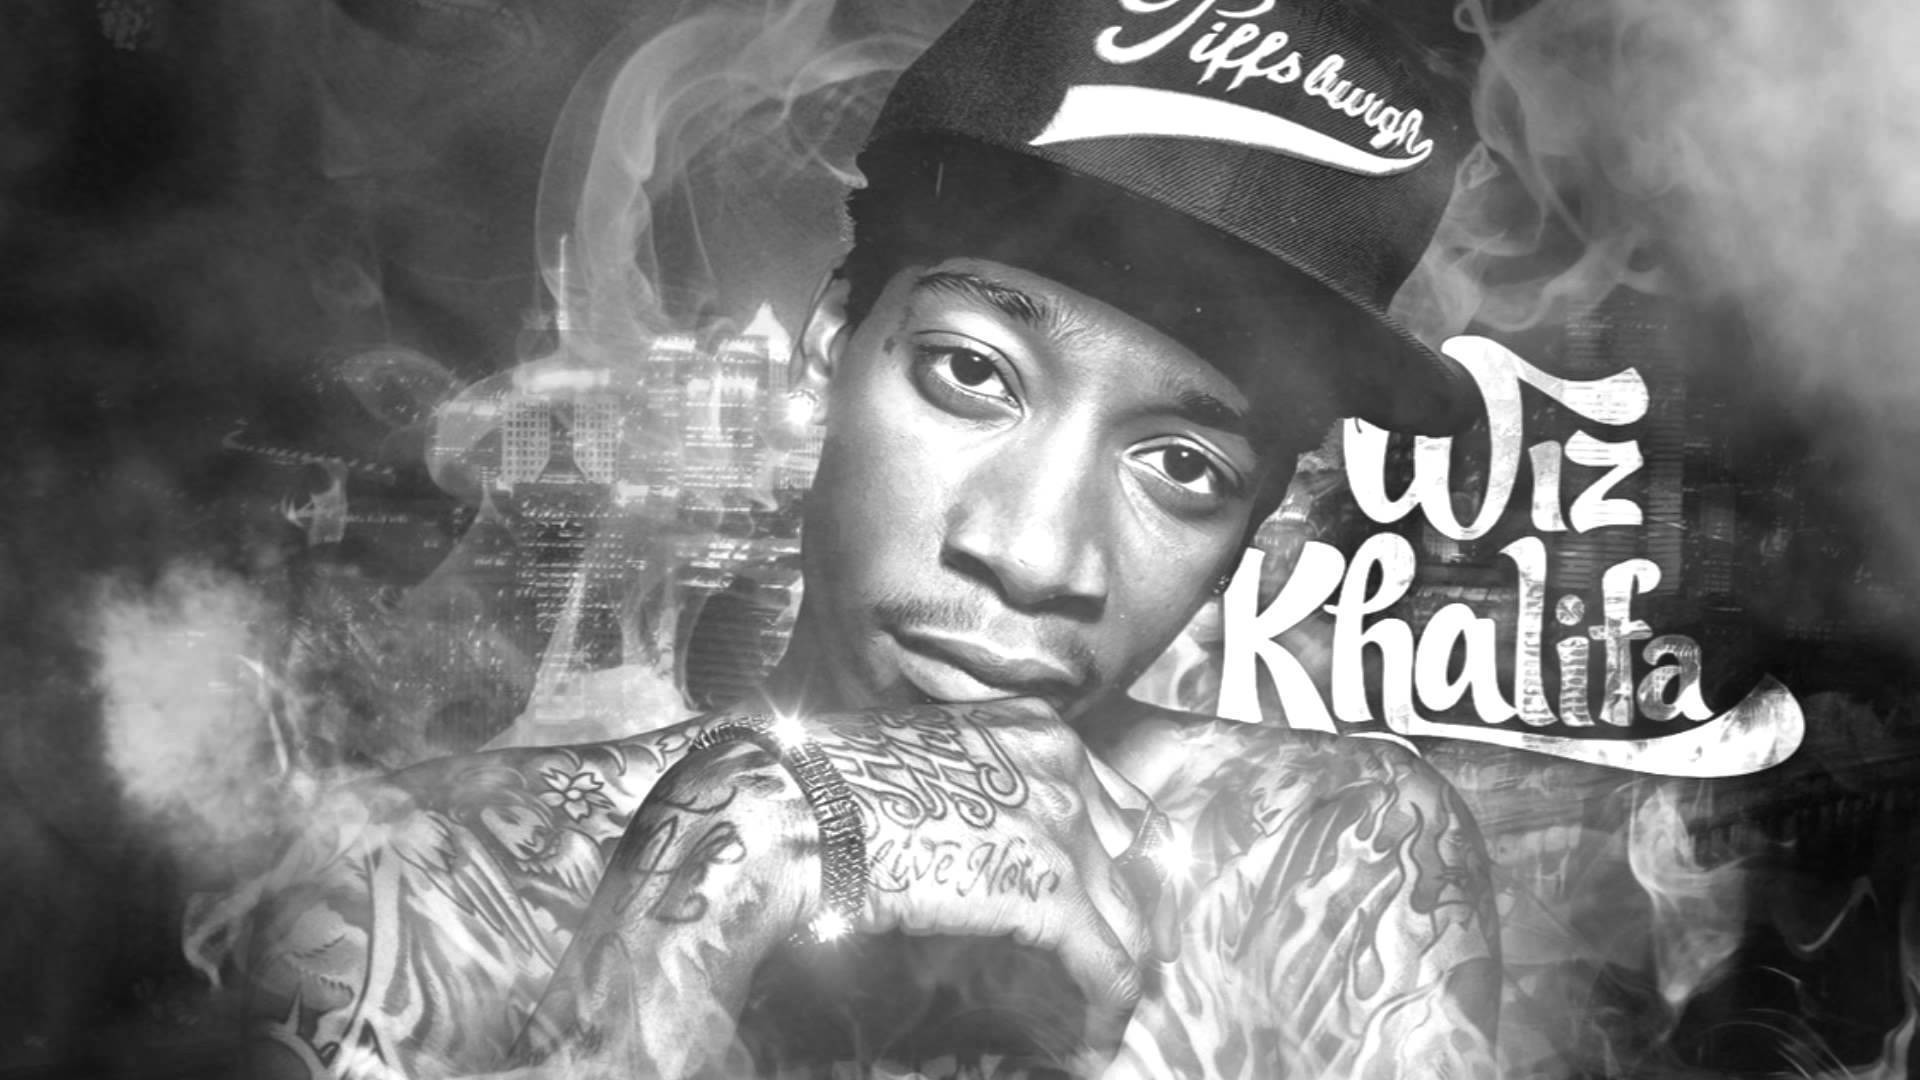 1920x1080  2560x1600 Wiz Khalifa - Wallpapers,Backgrounds,Pictures,Photos,Laptop  Wallpapers